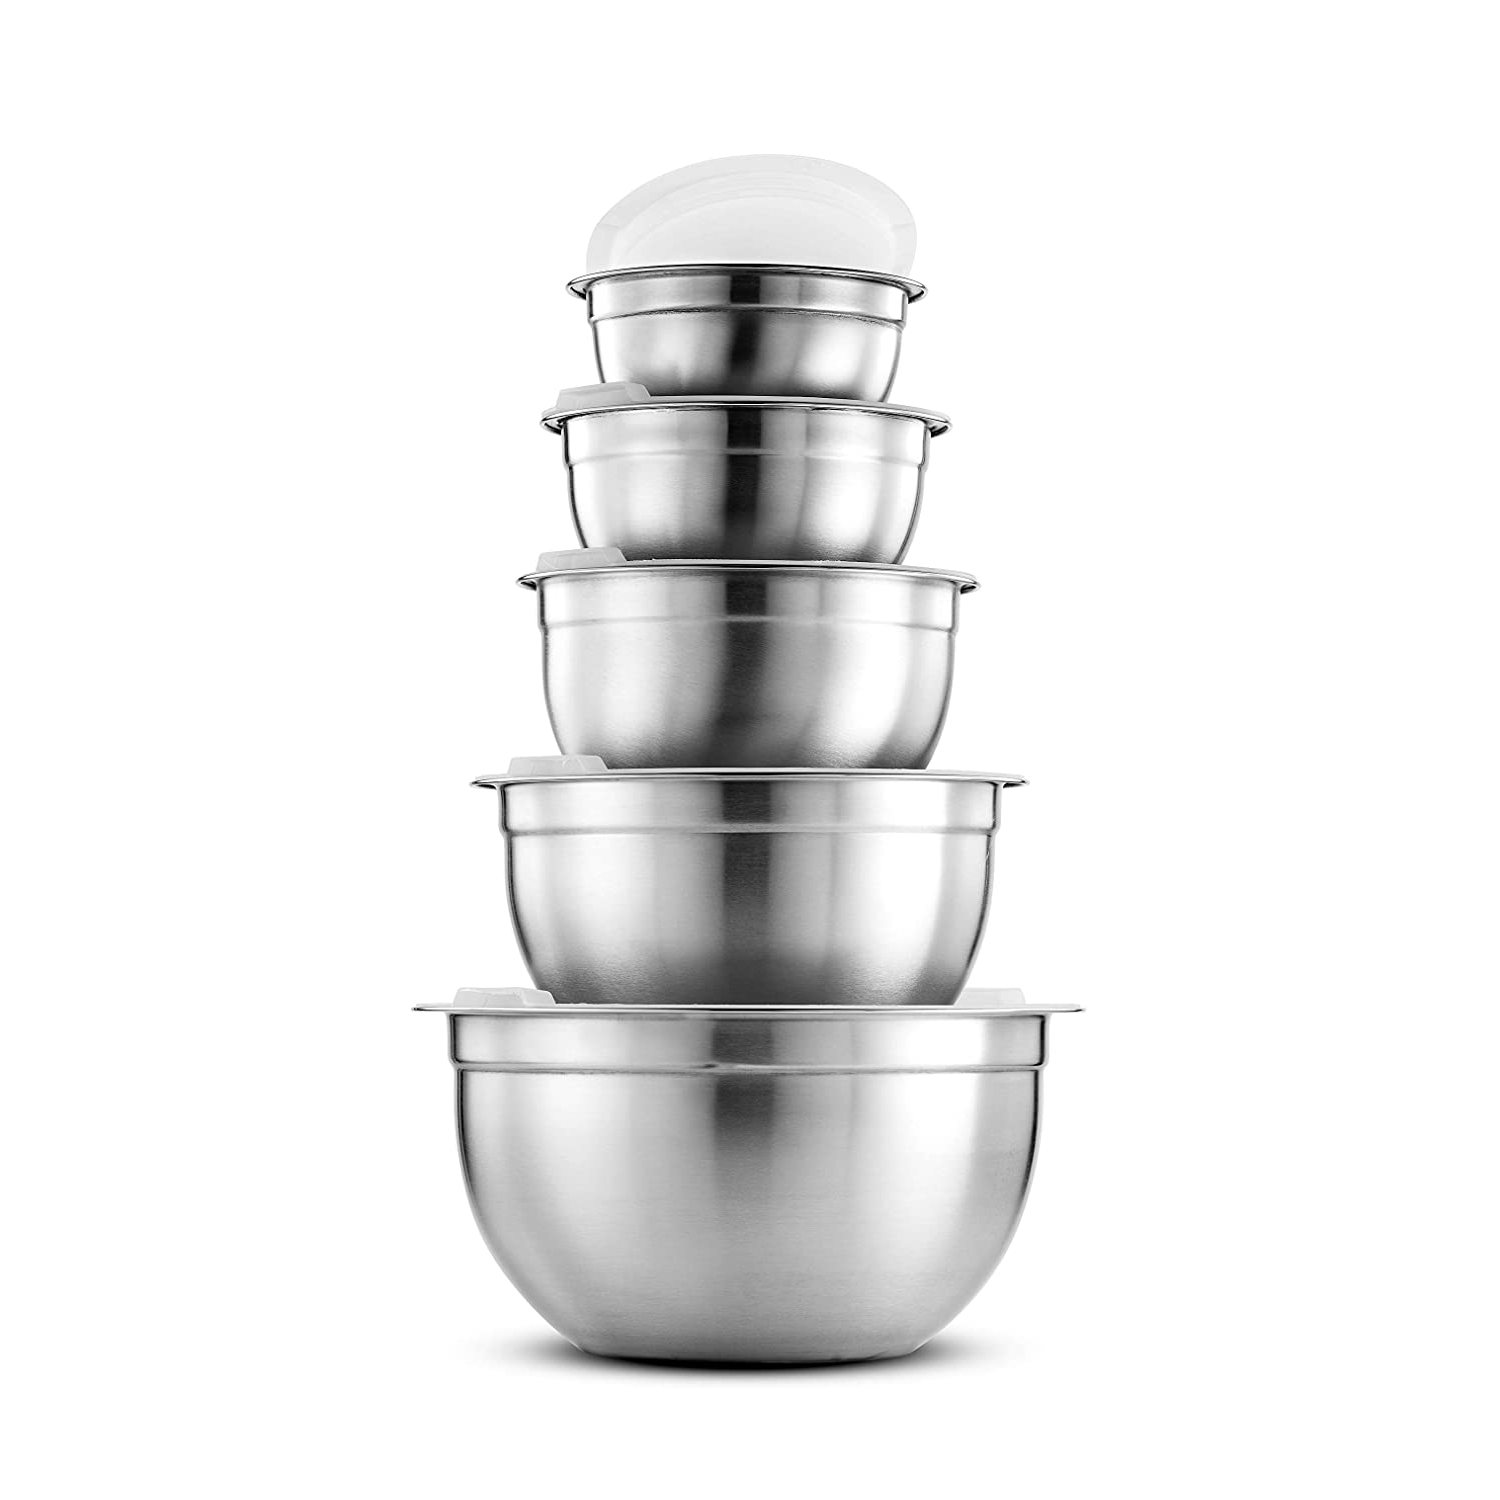 9020store Premium Stainless Steel Mixing Bowls with Airtight Lids (Set of 5) Nesting Bowls for Space Saving Storage, Easy Grip & Stability Design Mixing Bowl Set Versatile For Cooking, Baking